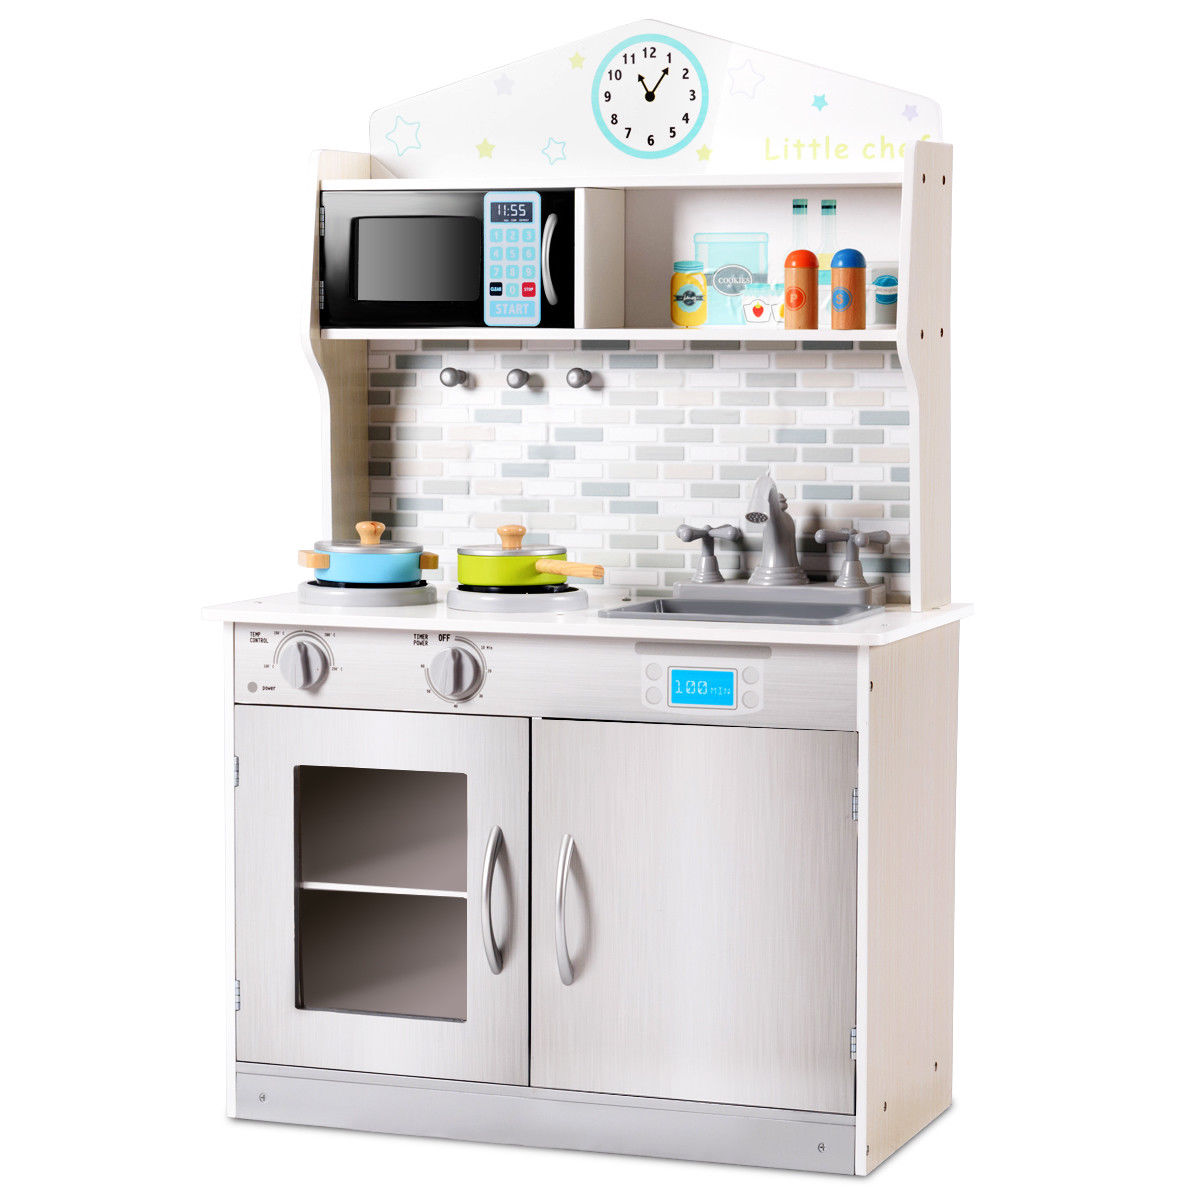 toddler play kitchens inexpensive kitchen cabinets sets gymax kids wooden pretend cooking playset cookware set toys gift